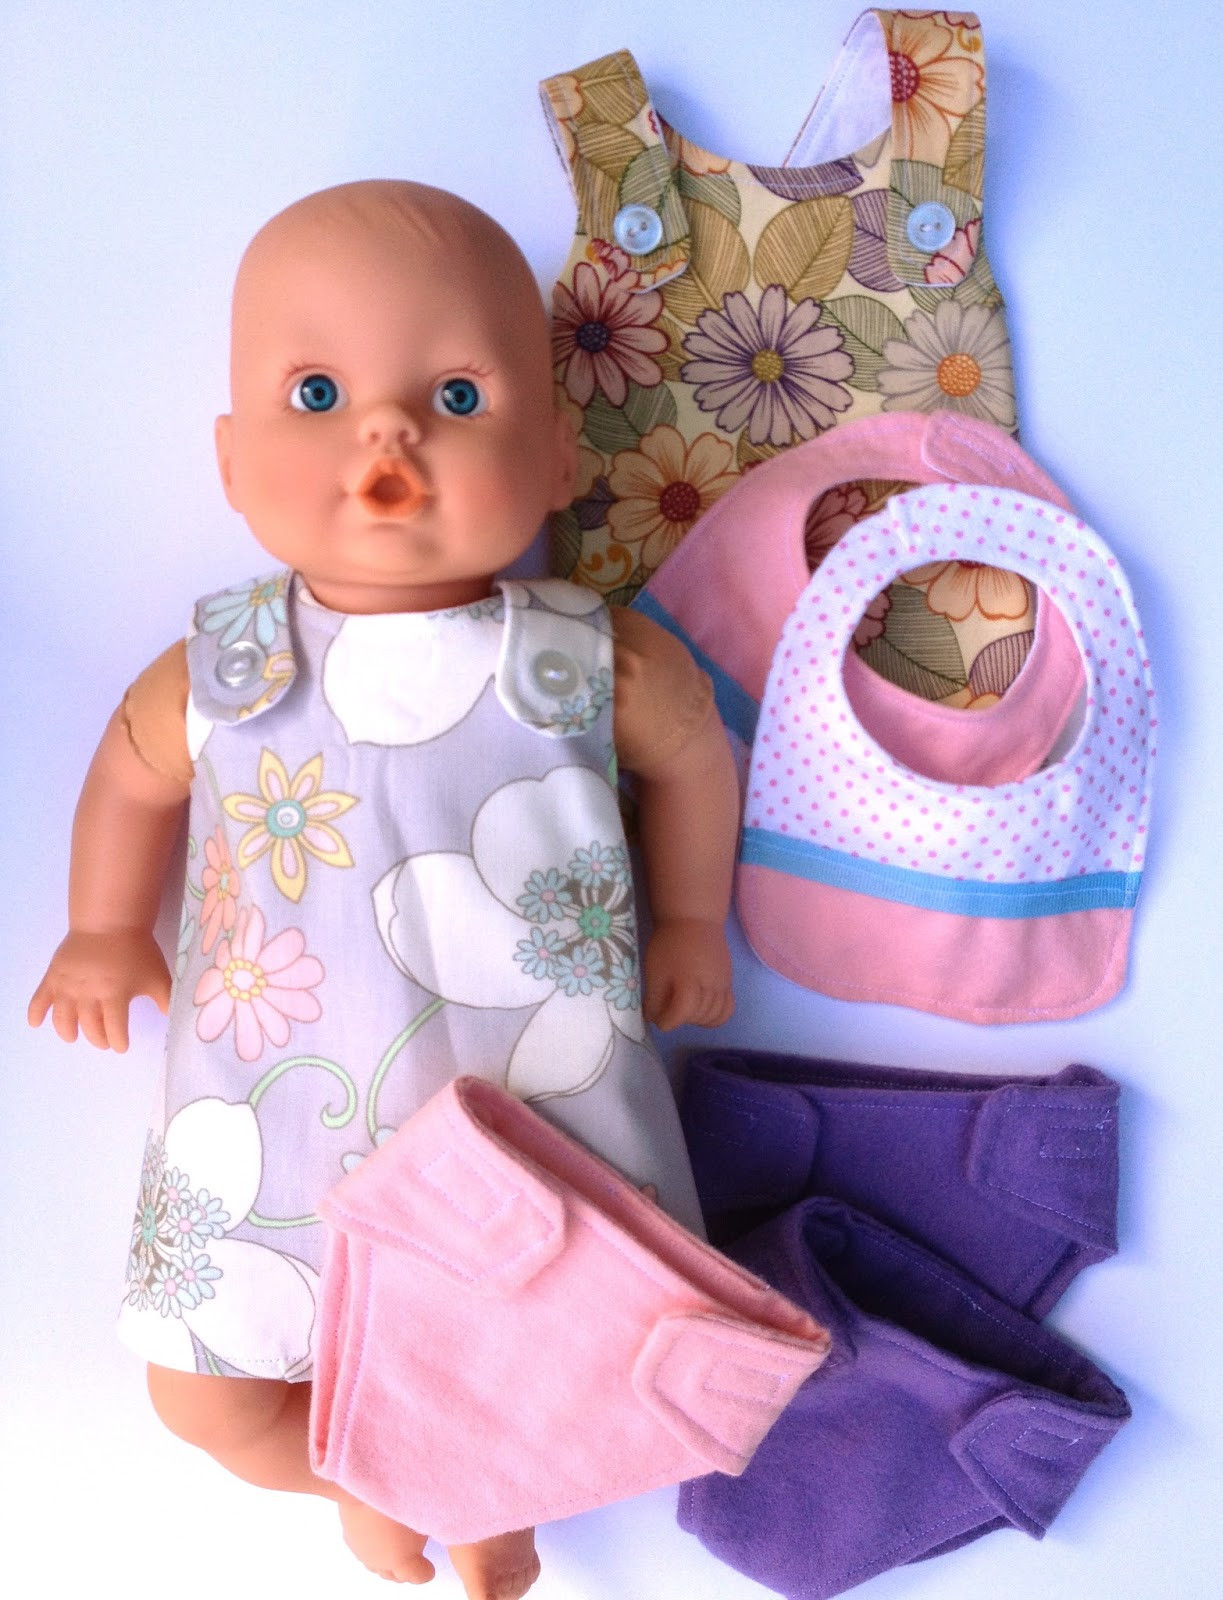 Best ideas about DIY Baby Doll . Save or Pin Handmade by Meg K Semi Homemade Birthday Doll Set Now.